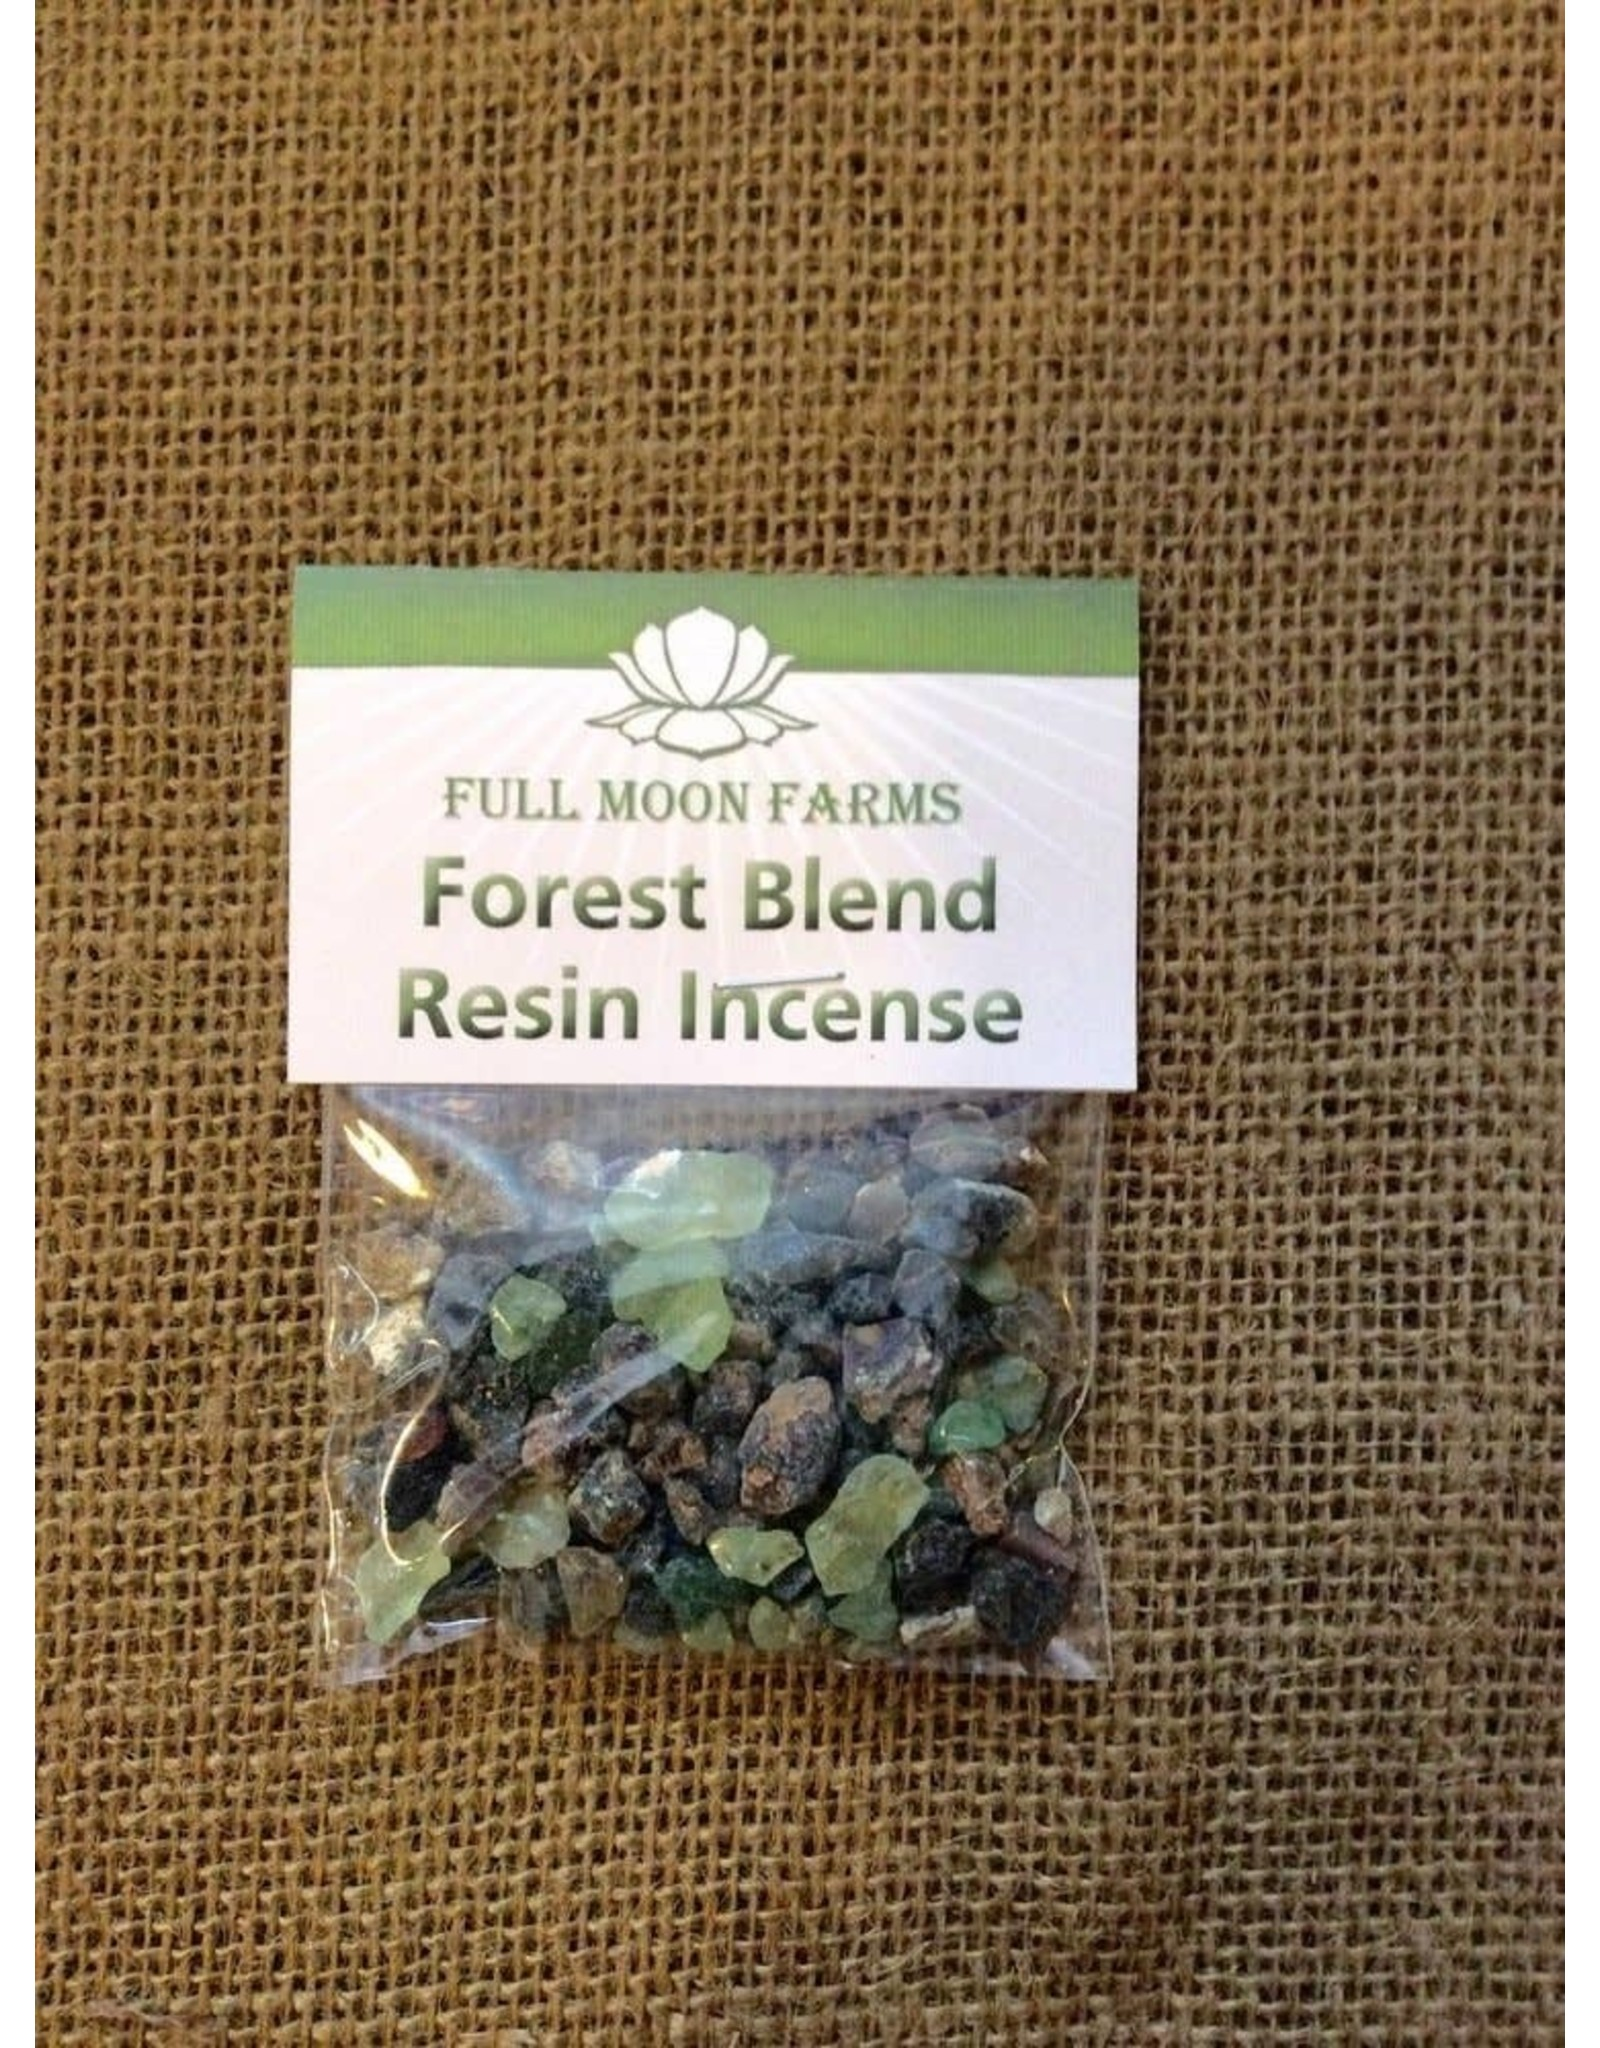 Full Moons Farms Resin Incense   Forest Blend